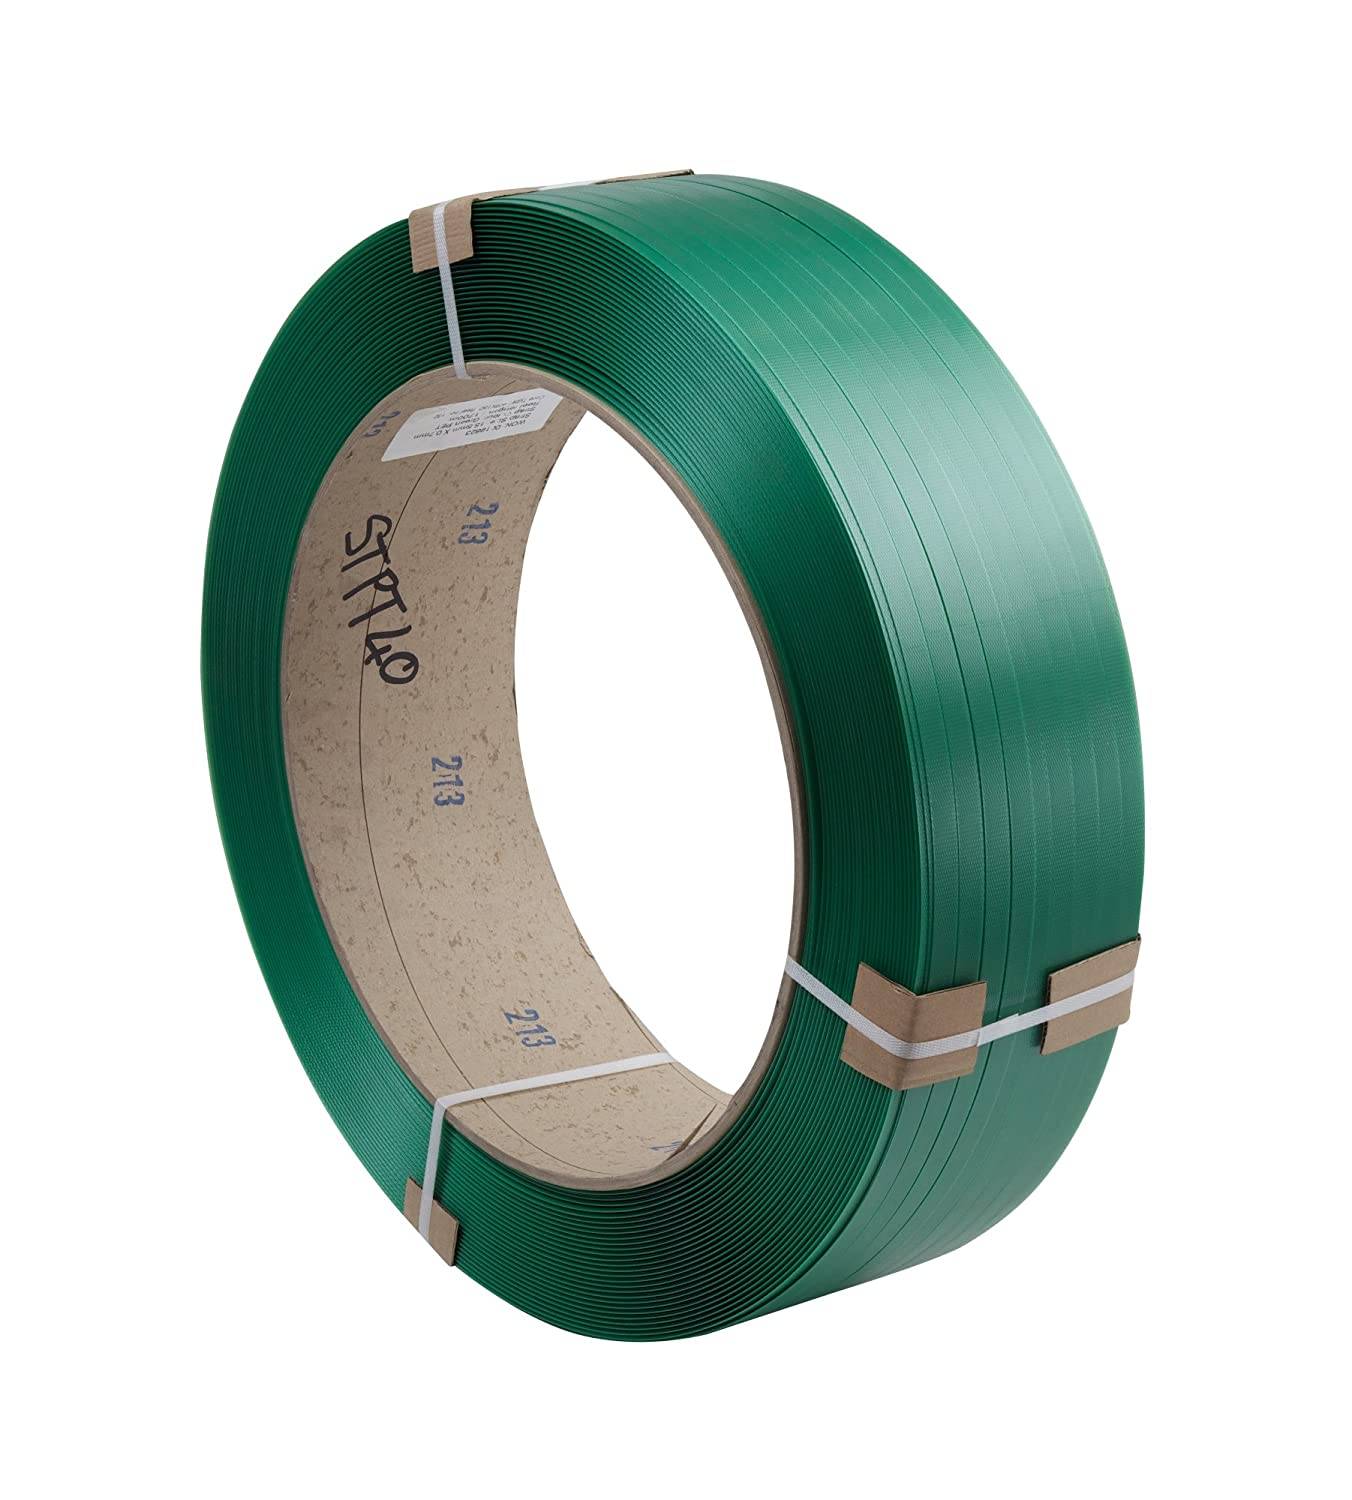 Swiftpak 12.5 x 0.70mm x 2100m Green PET Strapping (406/150) (Pack of 1) Swiftpak Limited STPT30